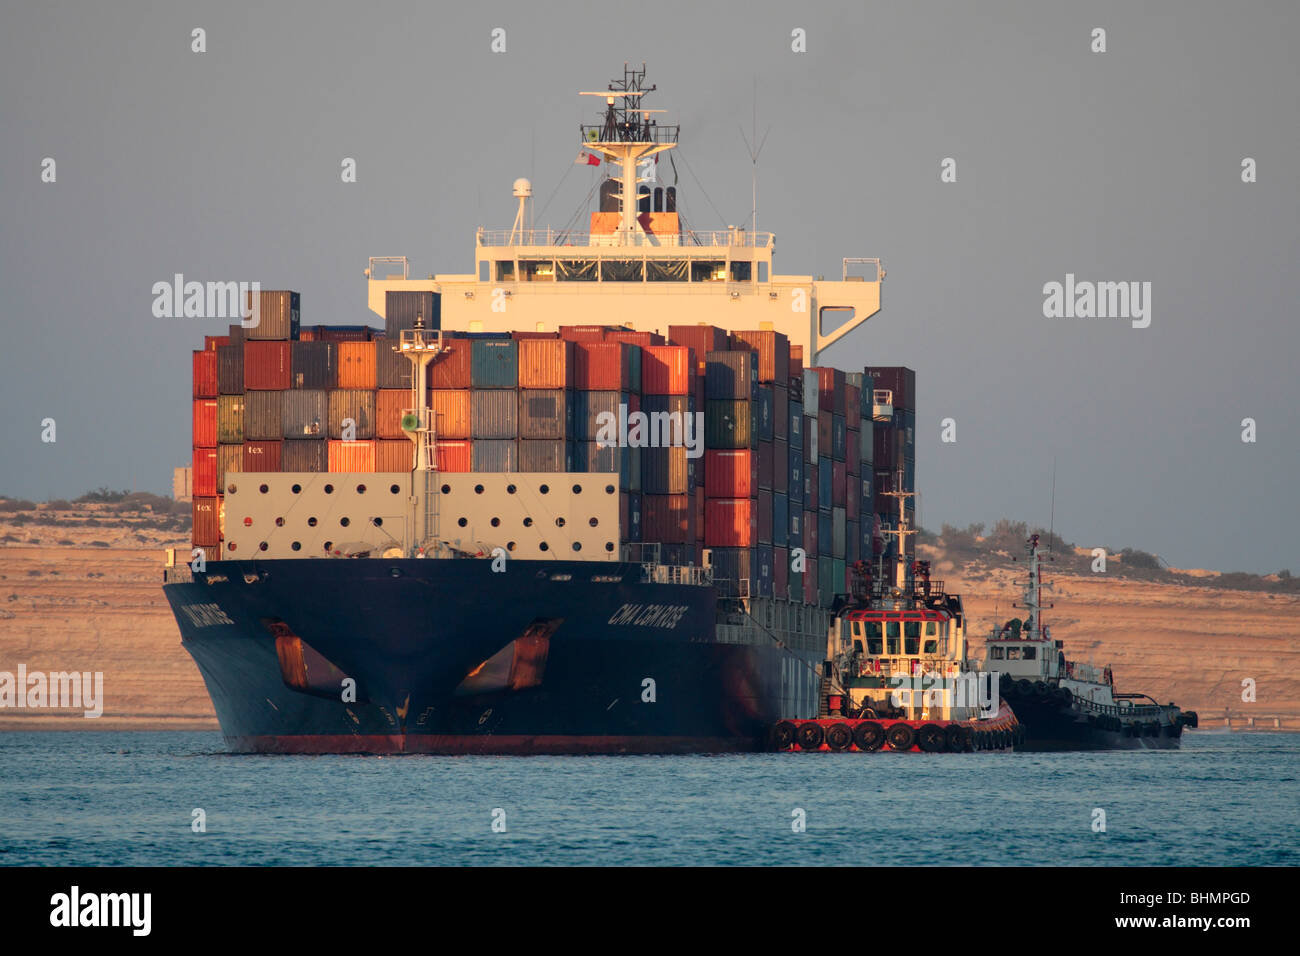 International trade by sea transport. Container ship accompanied by tugboats as it enters the Malta Freeport. Shipping - Stock Image